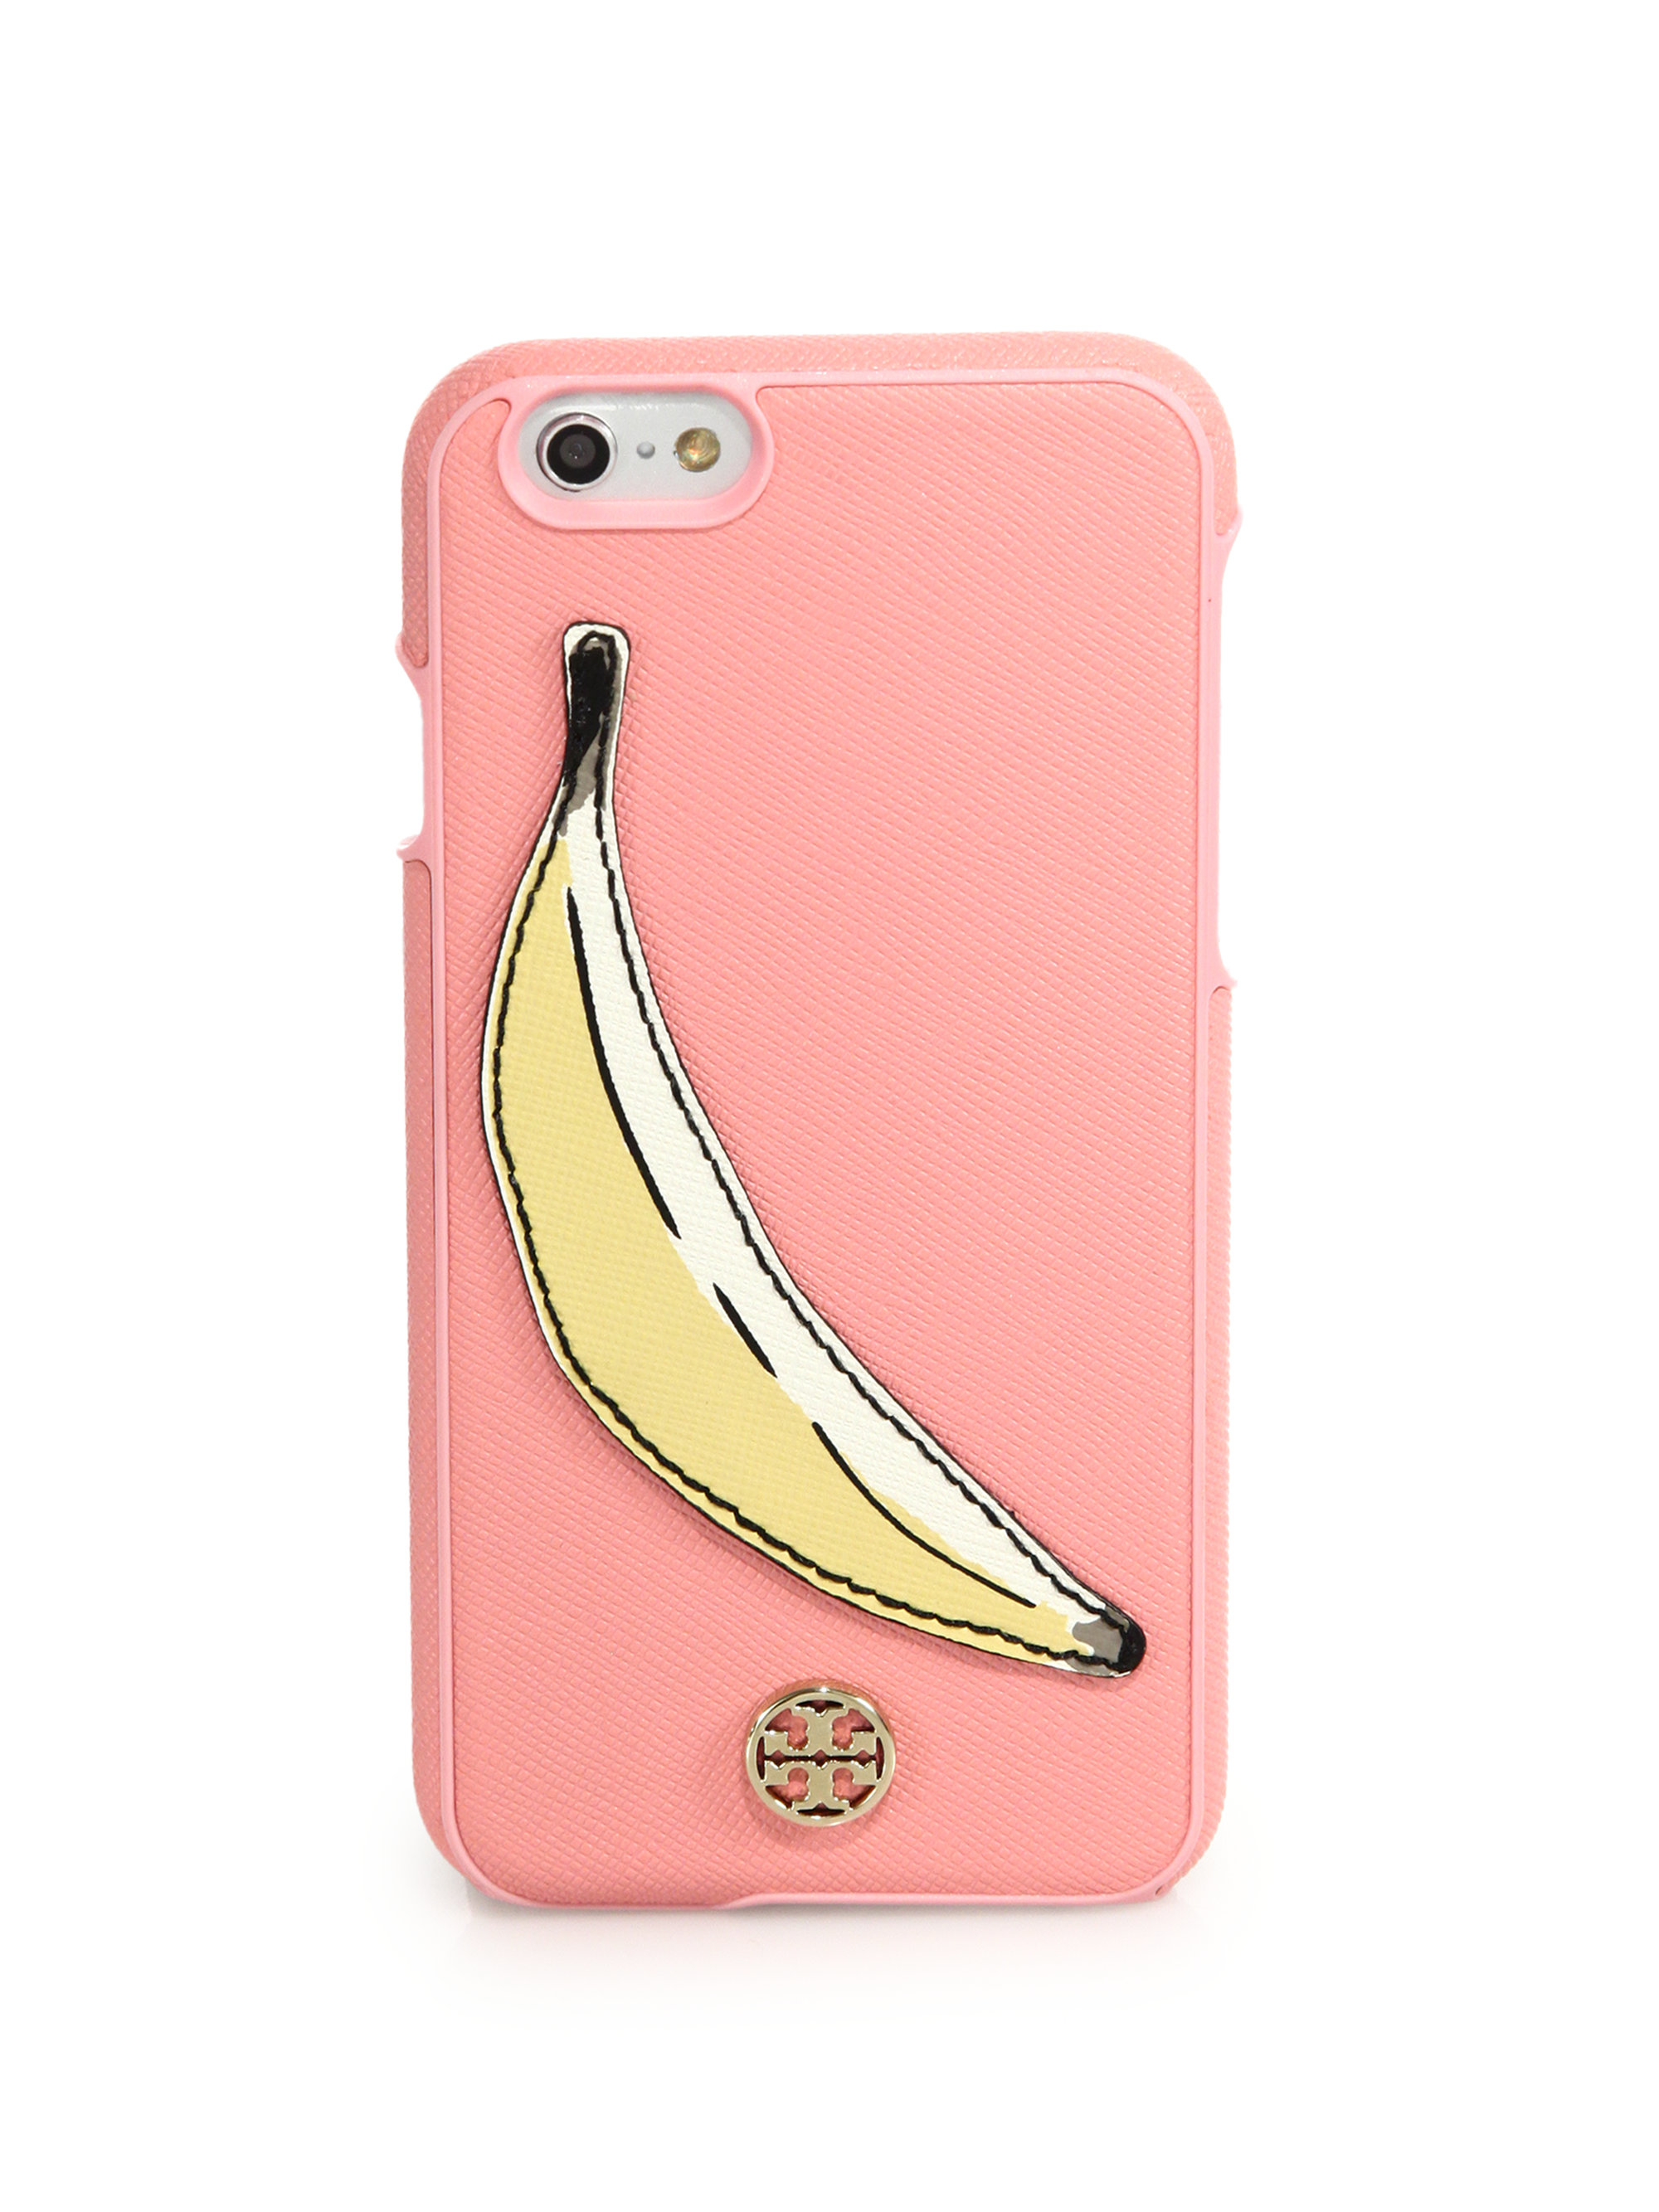 tory burch iphone case burch banana saffiano leather iphone 6 in pink 5058